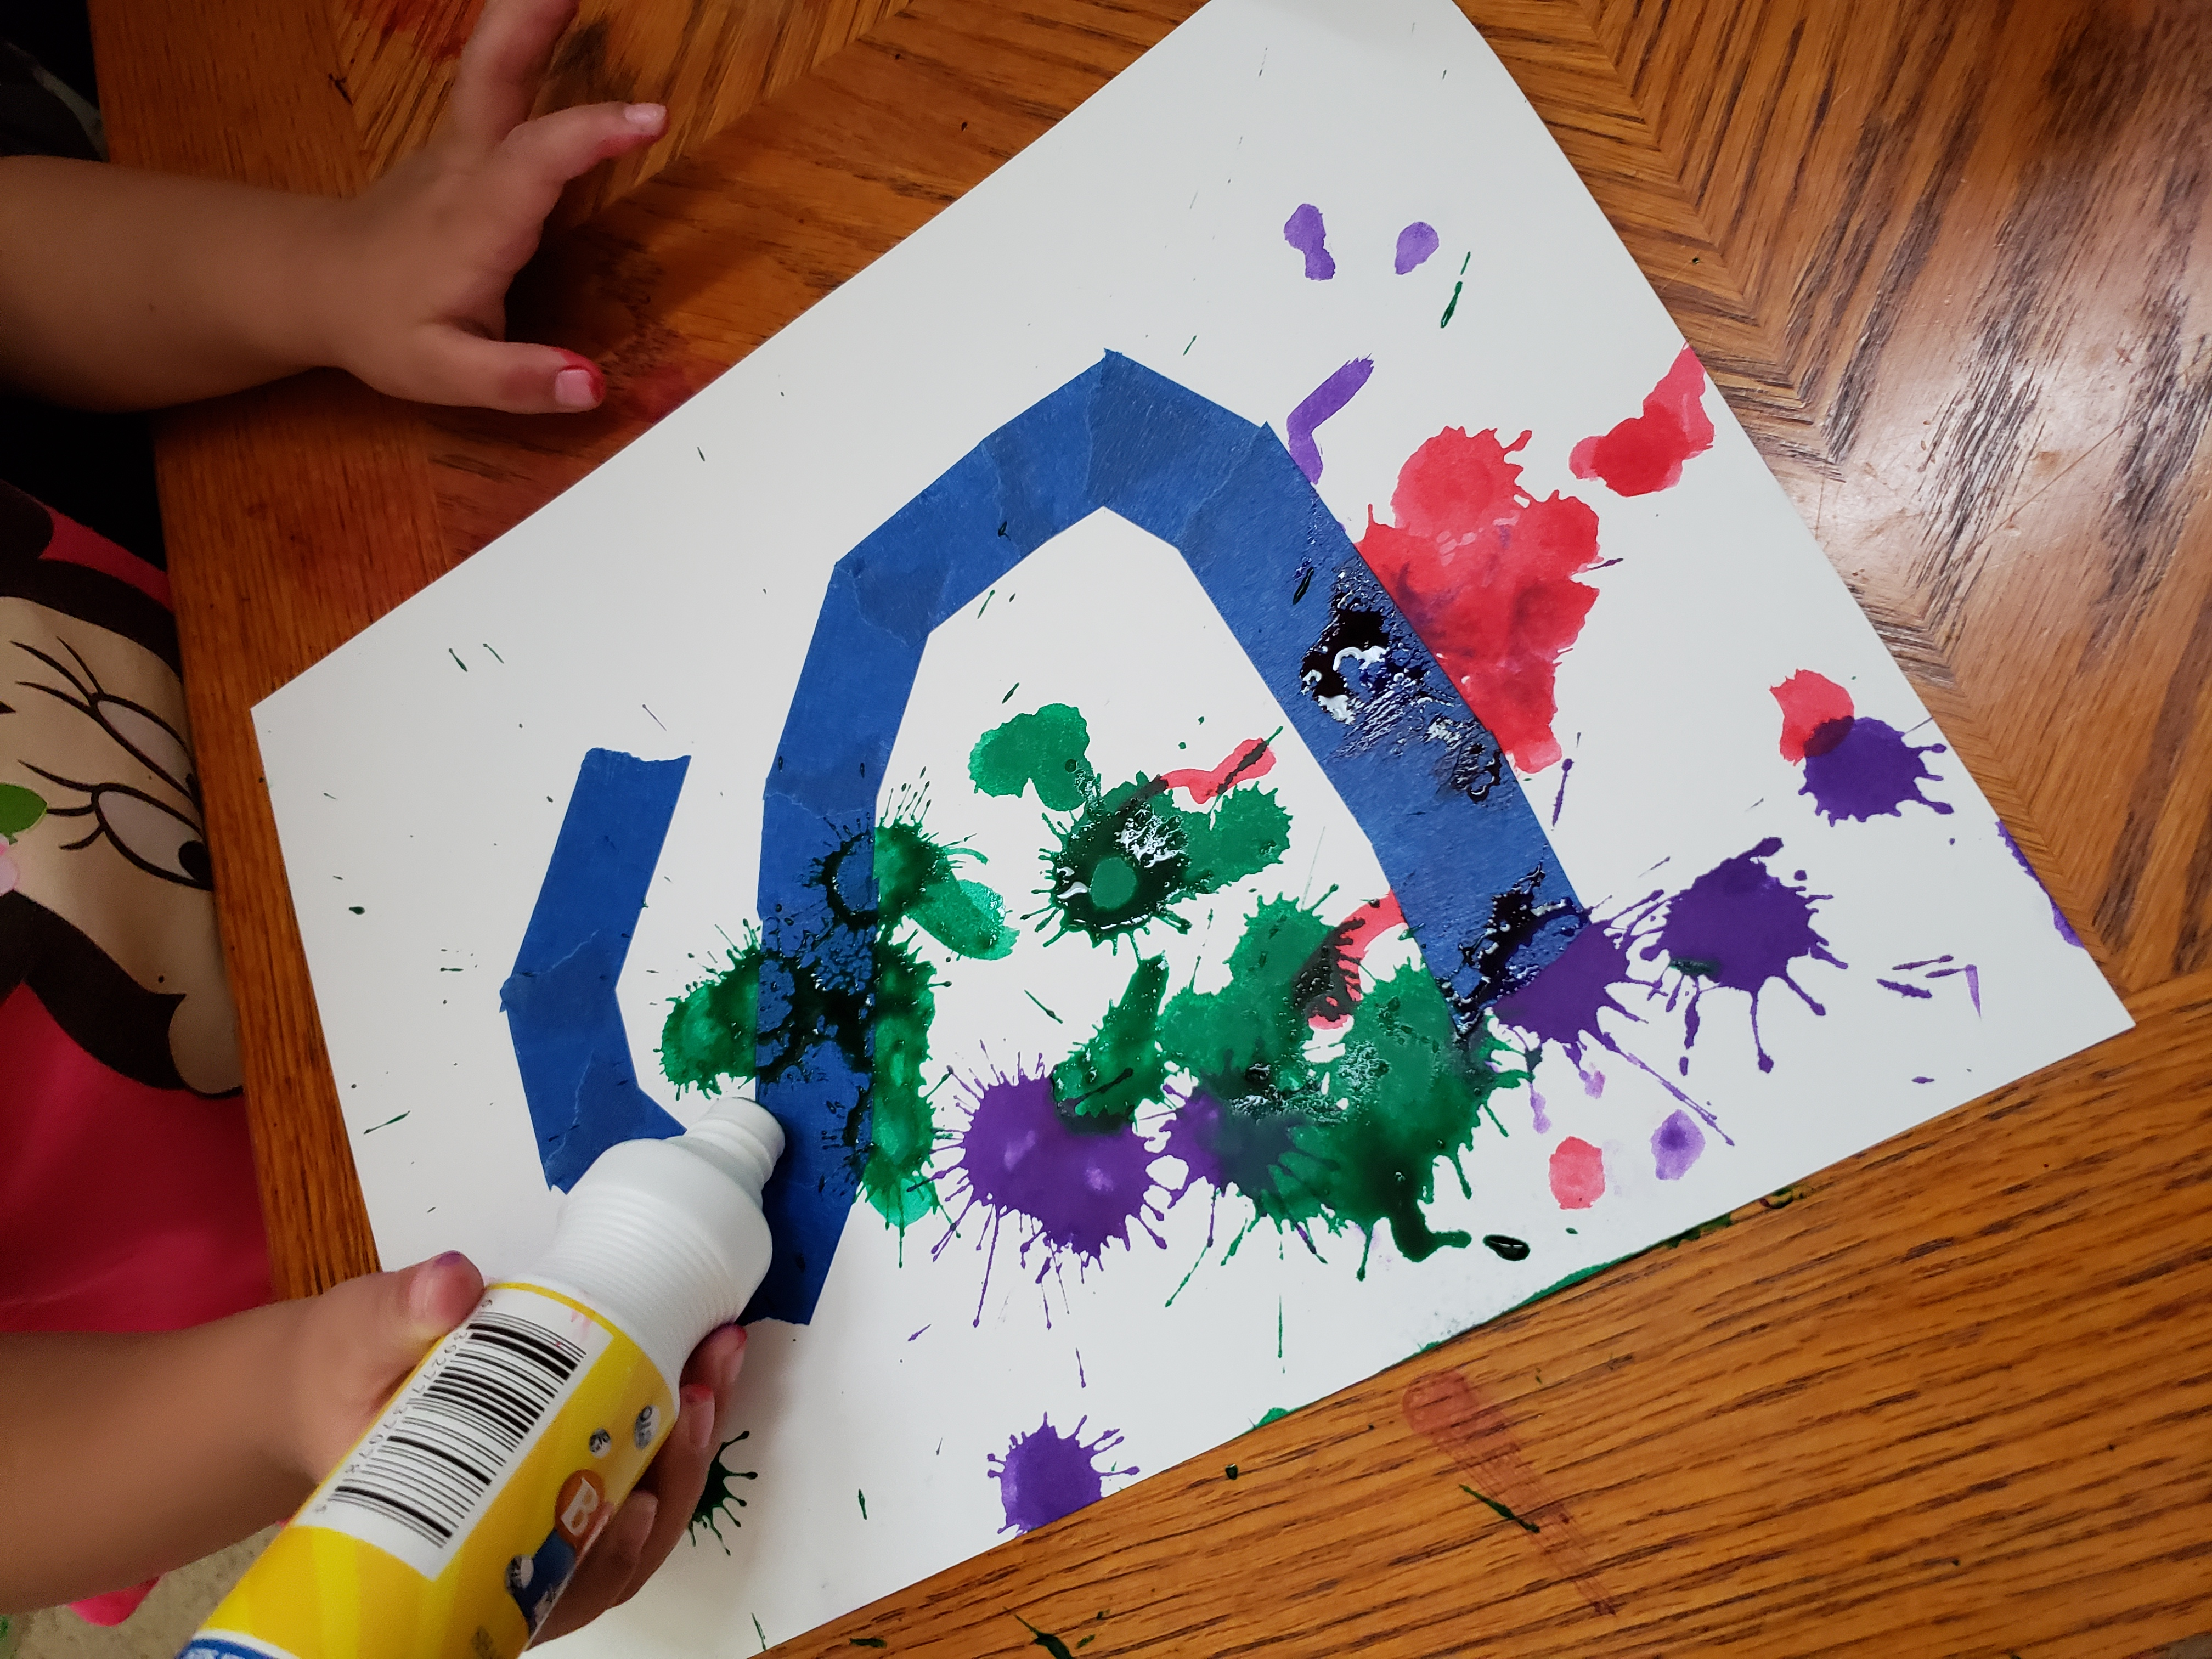 Daycare openings for ages 2-5 in Elk Grove